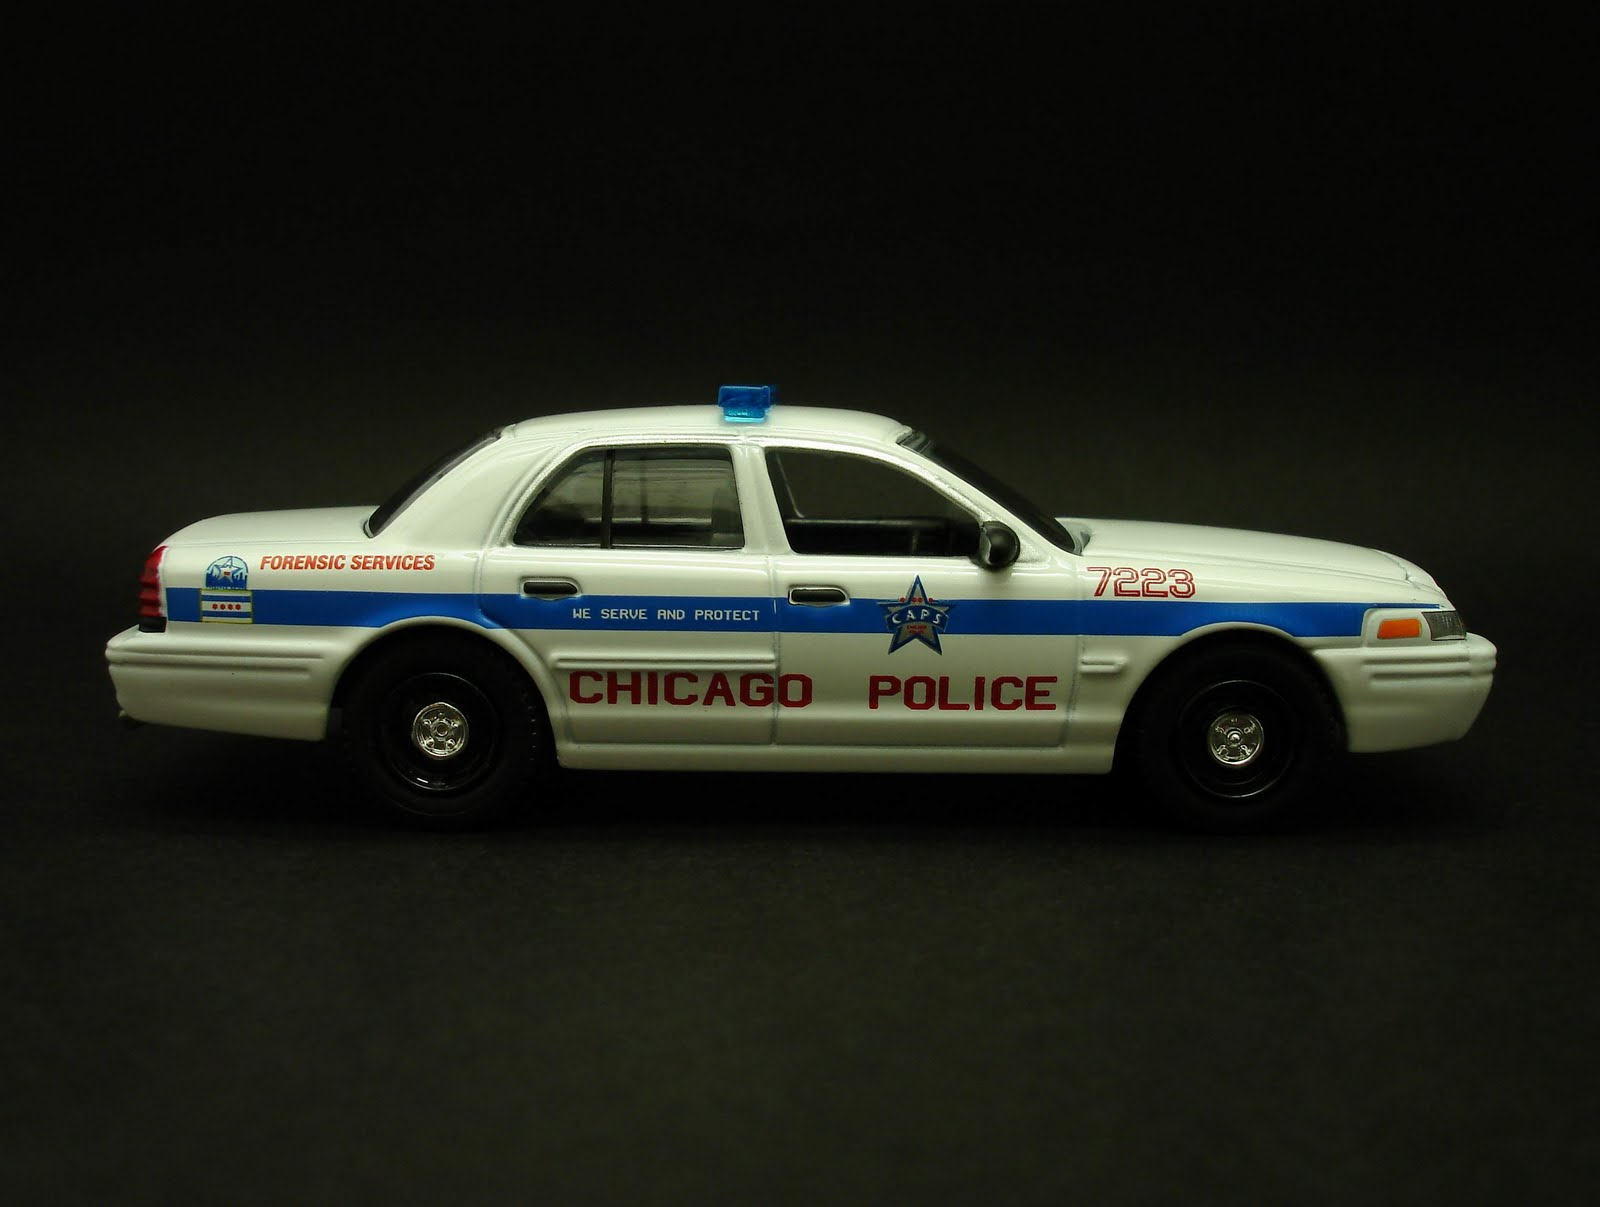 1970 Ford Police Interceptor Chicago Crown Victoria Diecast Hobbist Il Forensic Services Car 1600x1207